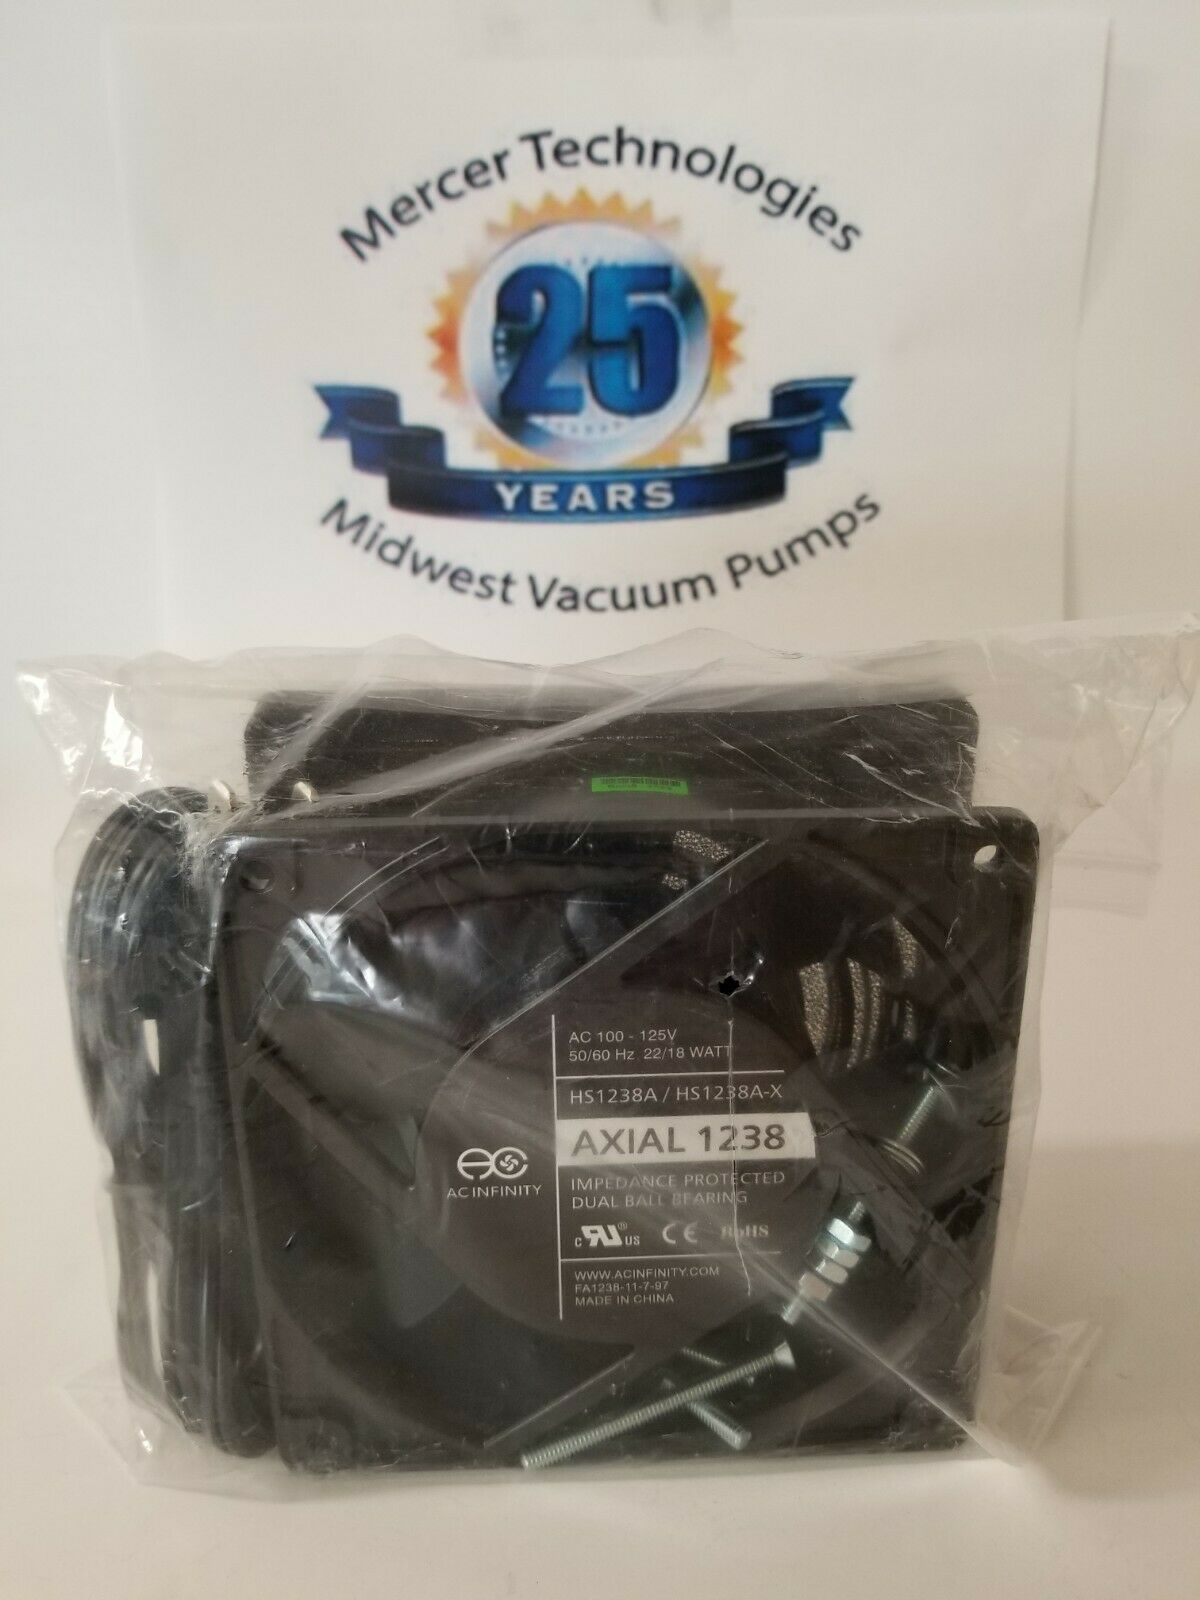 (1) AC Infinity AXIAL 1238, Muffin Fan, 120V AC 120mm x 38mm High Speed Server